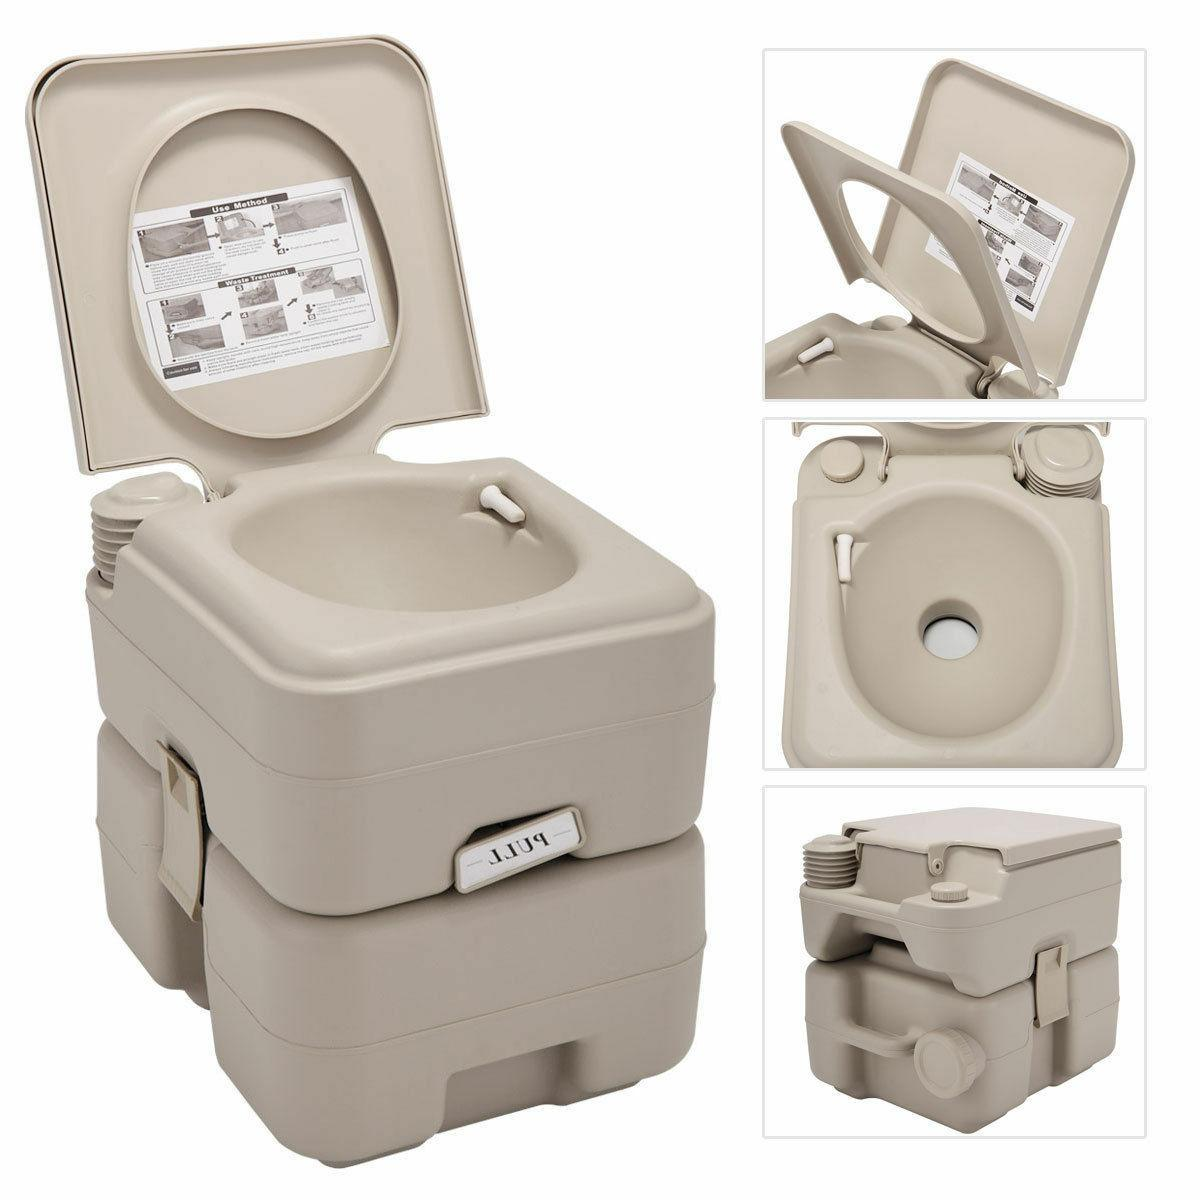 5 20L Toilet Flush Travel Camping Commode Potty Indoor